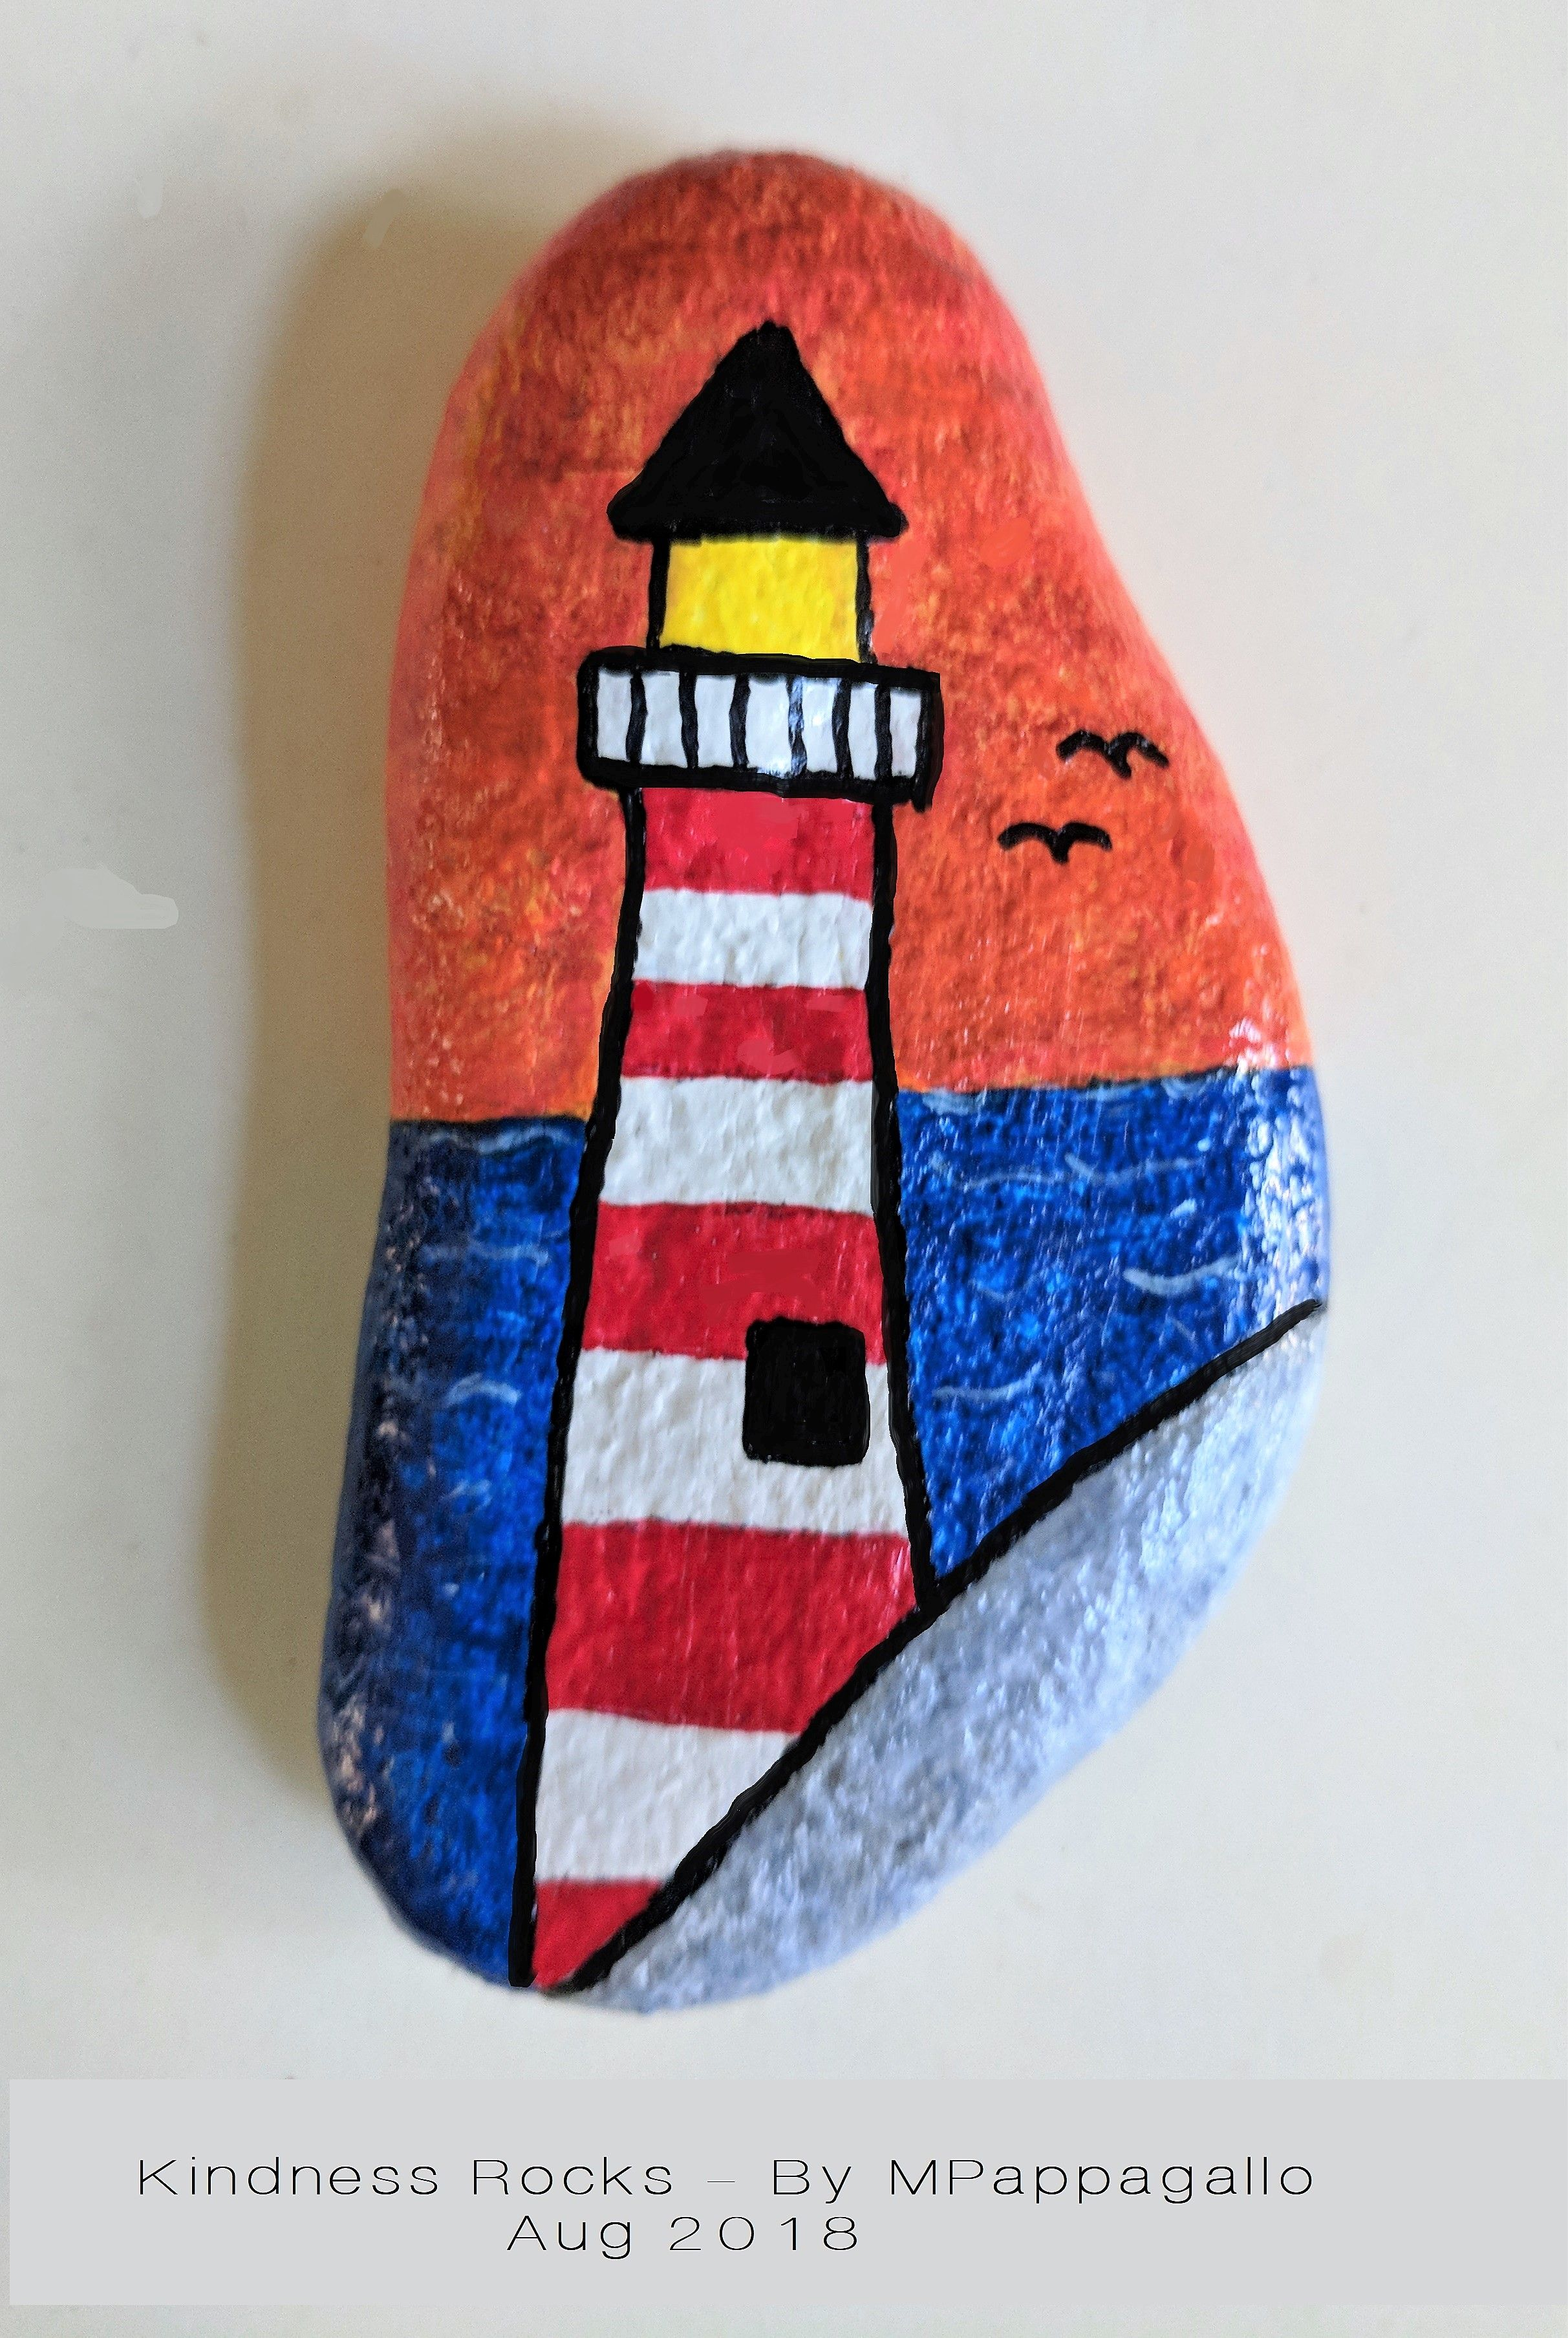 Lighthouse Painted Rock - Aug 2018 #rockpainting